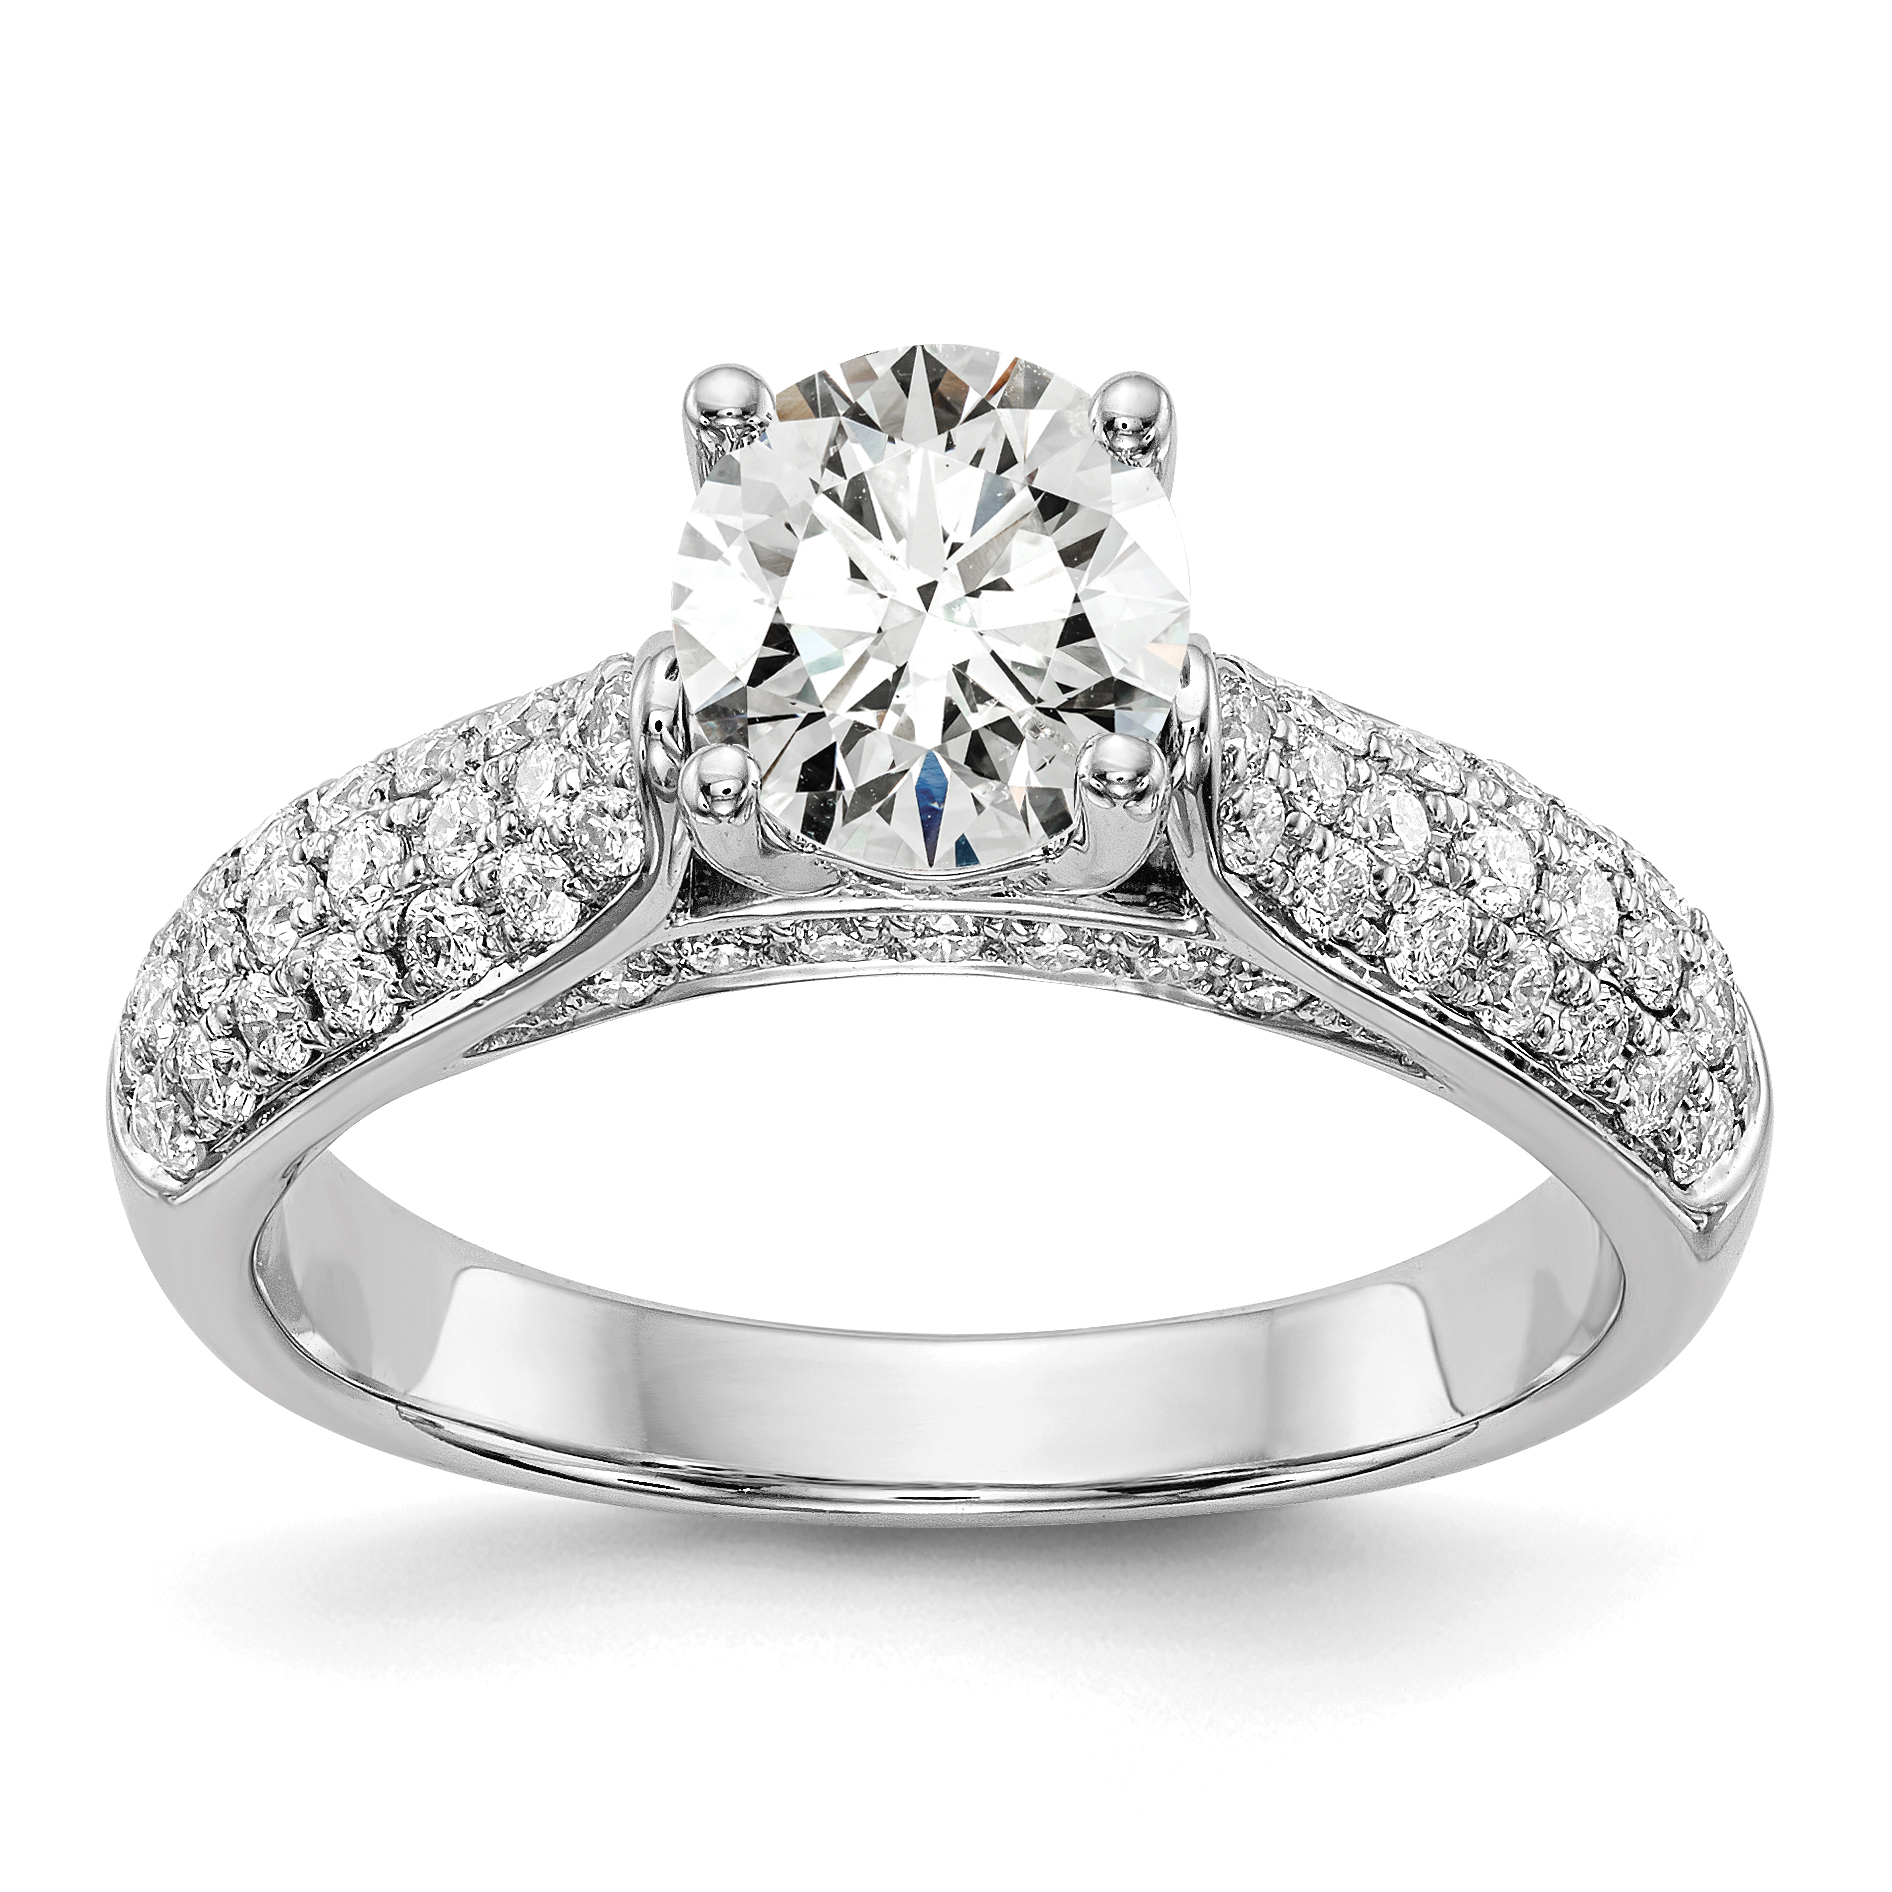 14k White gold Semi Mount Engagement Ring by True Origin.  0.75ct Round Brillian